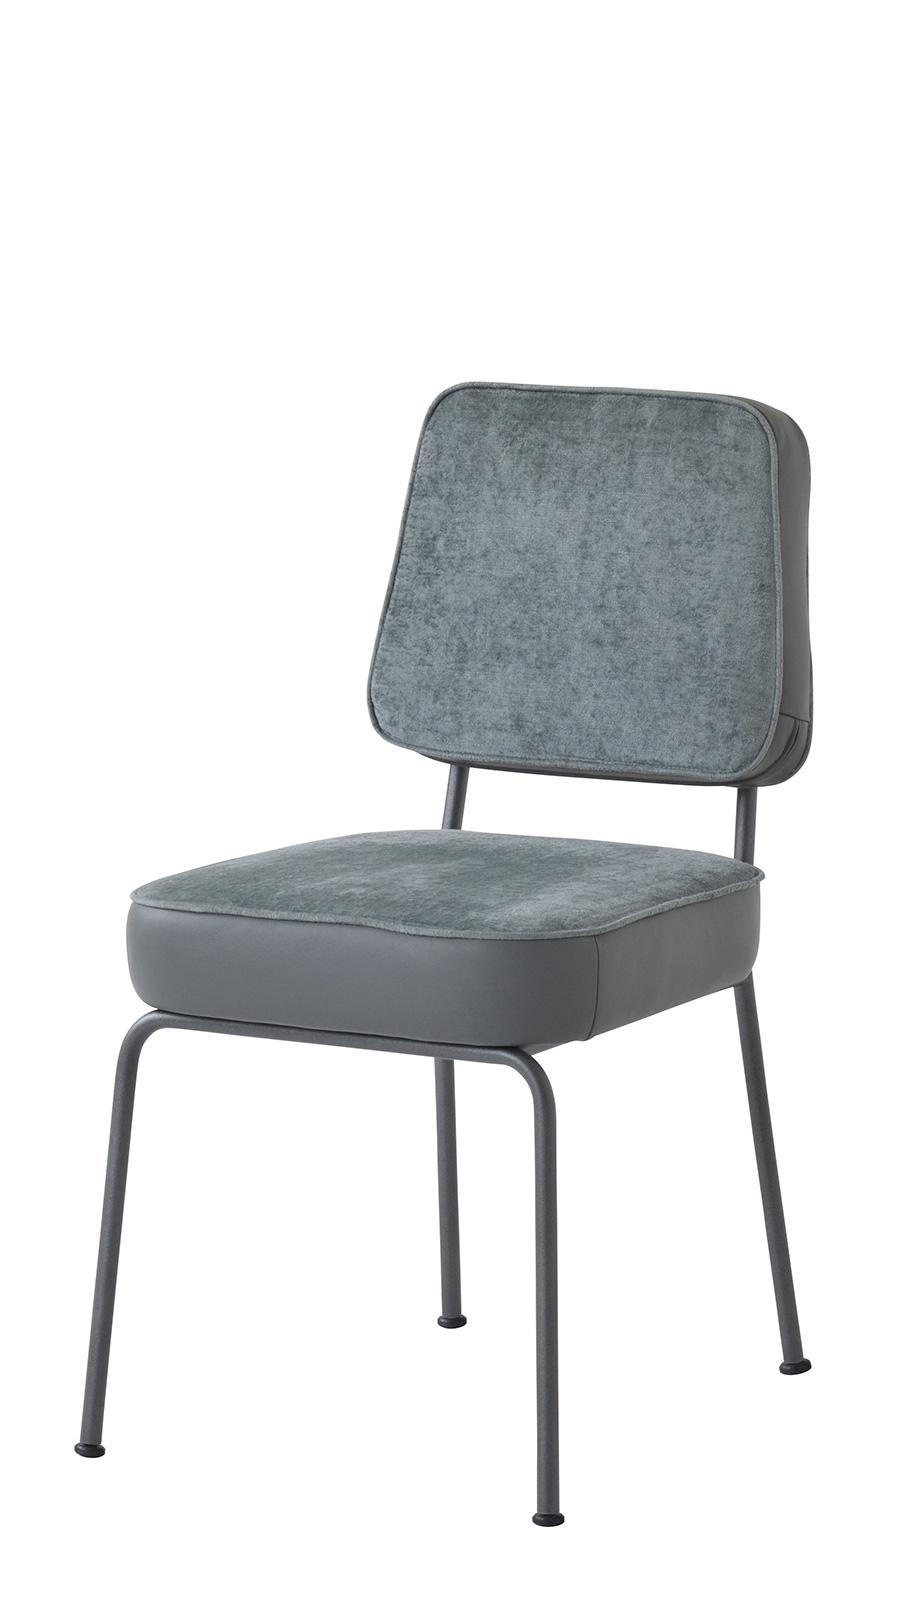 Metal structure. Soft seat and backrest are covered with velvet and soft leather available in several colours. Vintage and classic style padded chair.